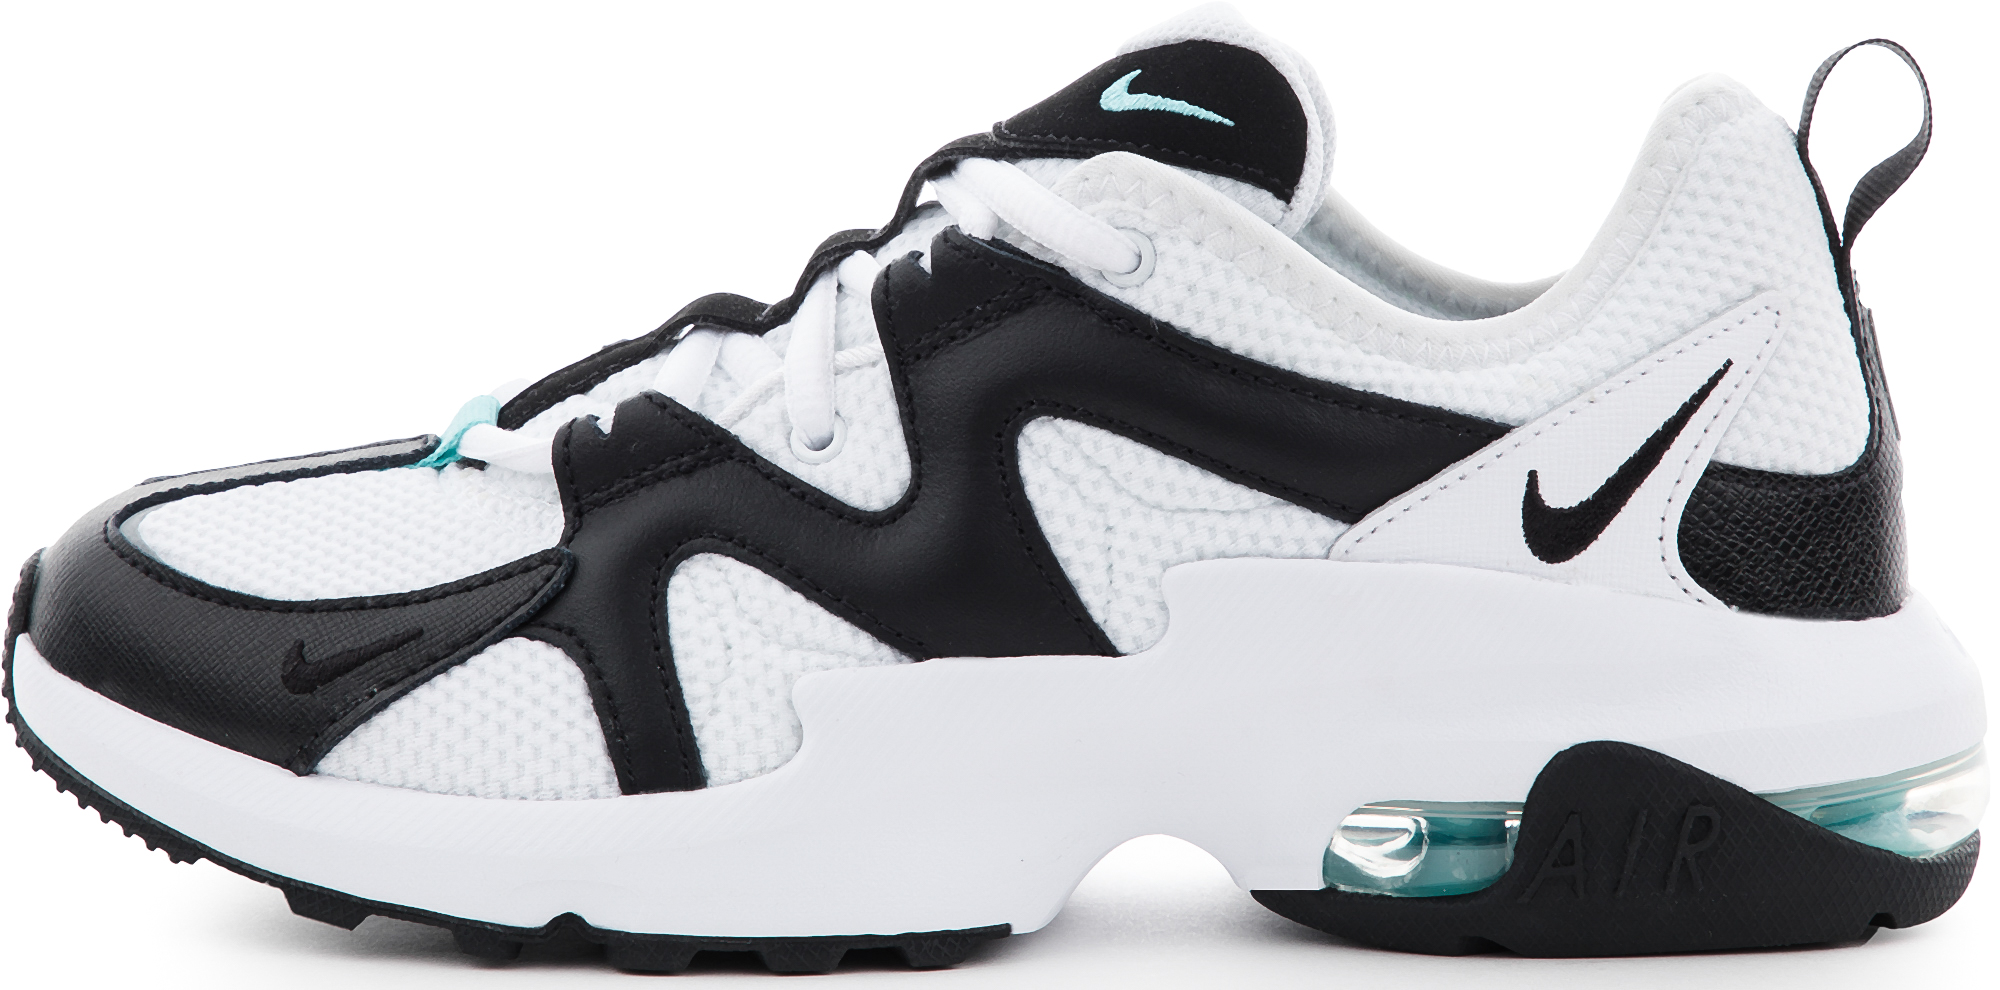 Nike Кроссовки женские Nike Air Max Graviton, размер 39